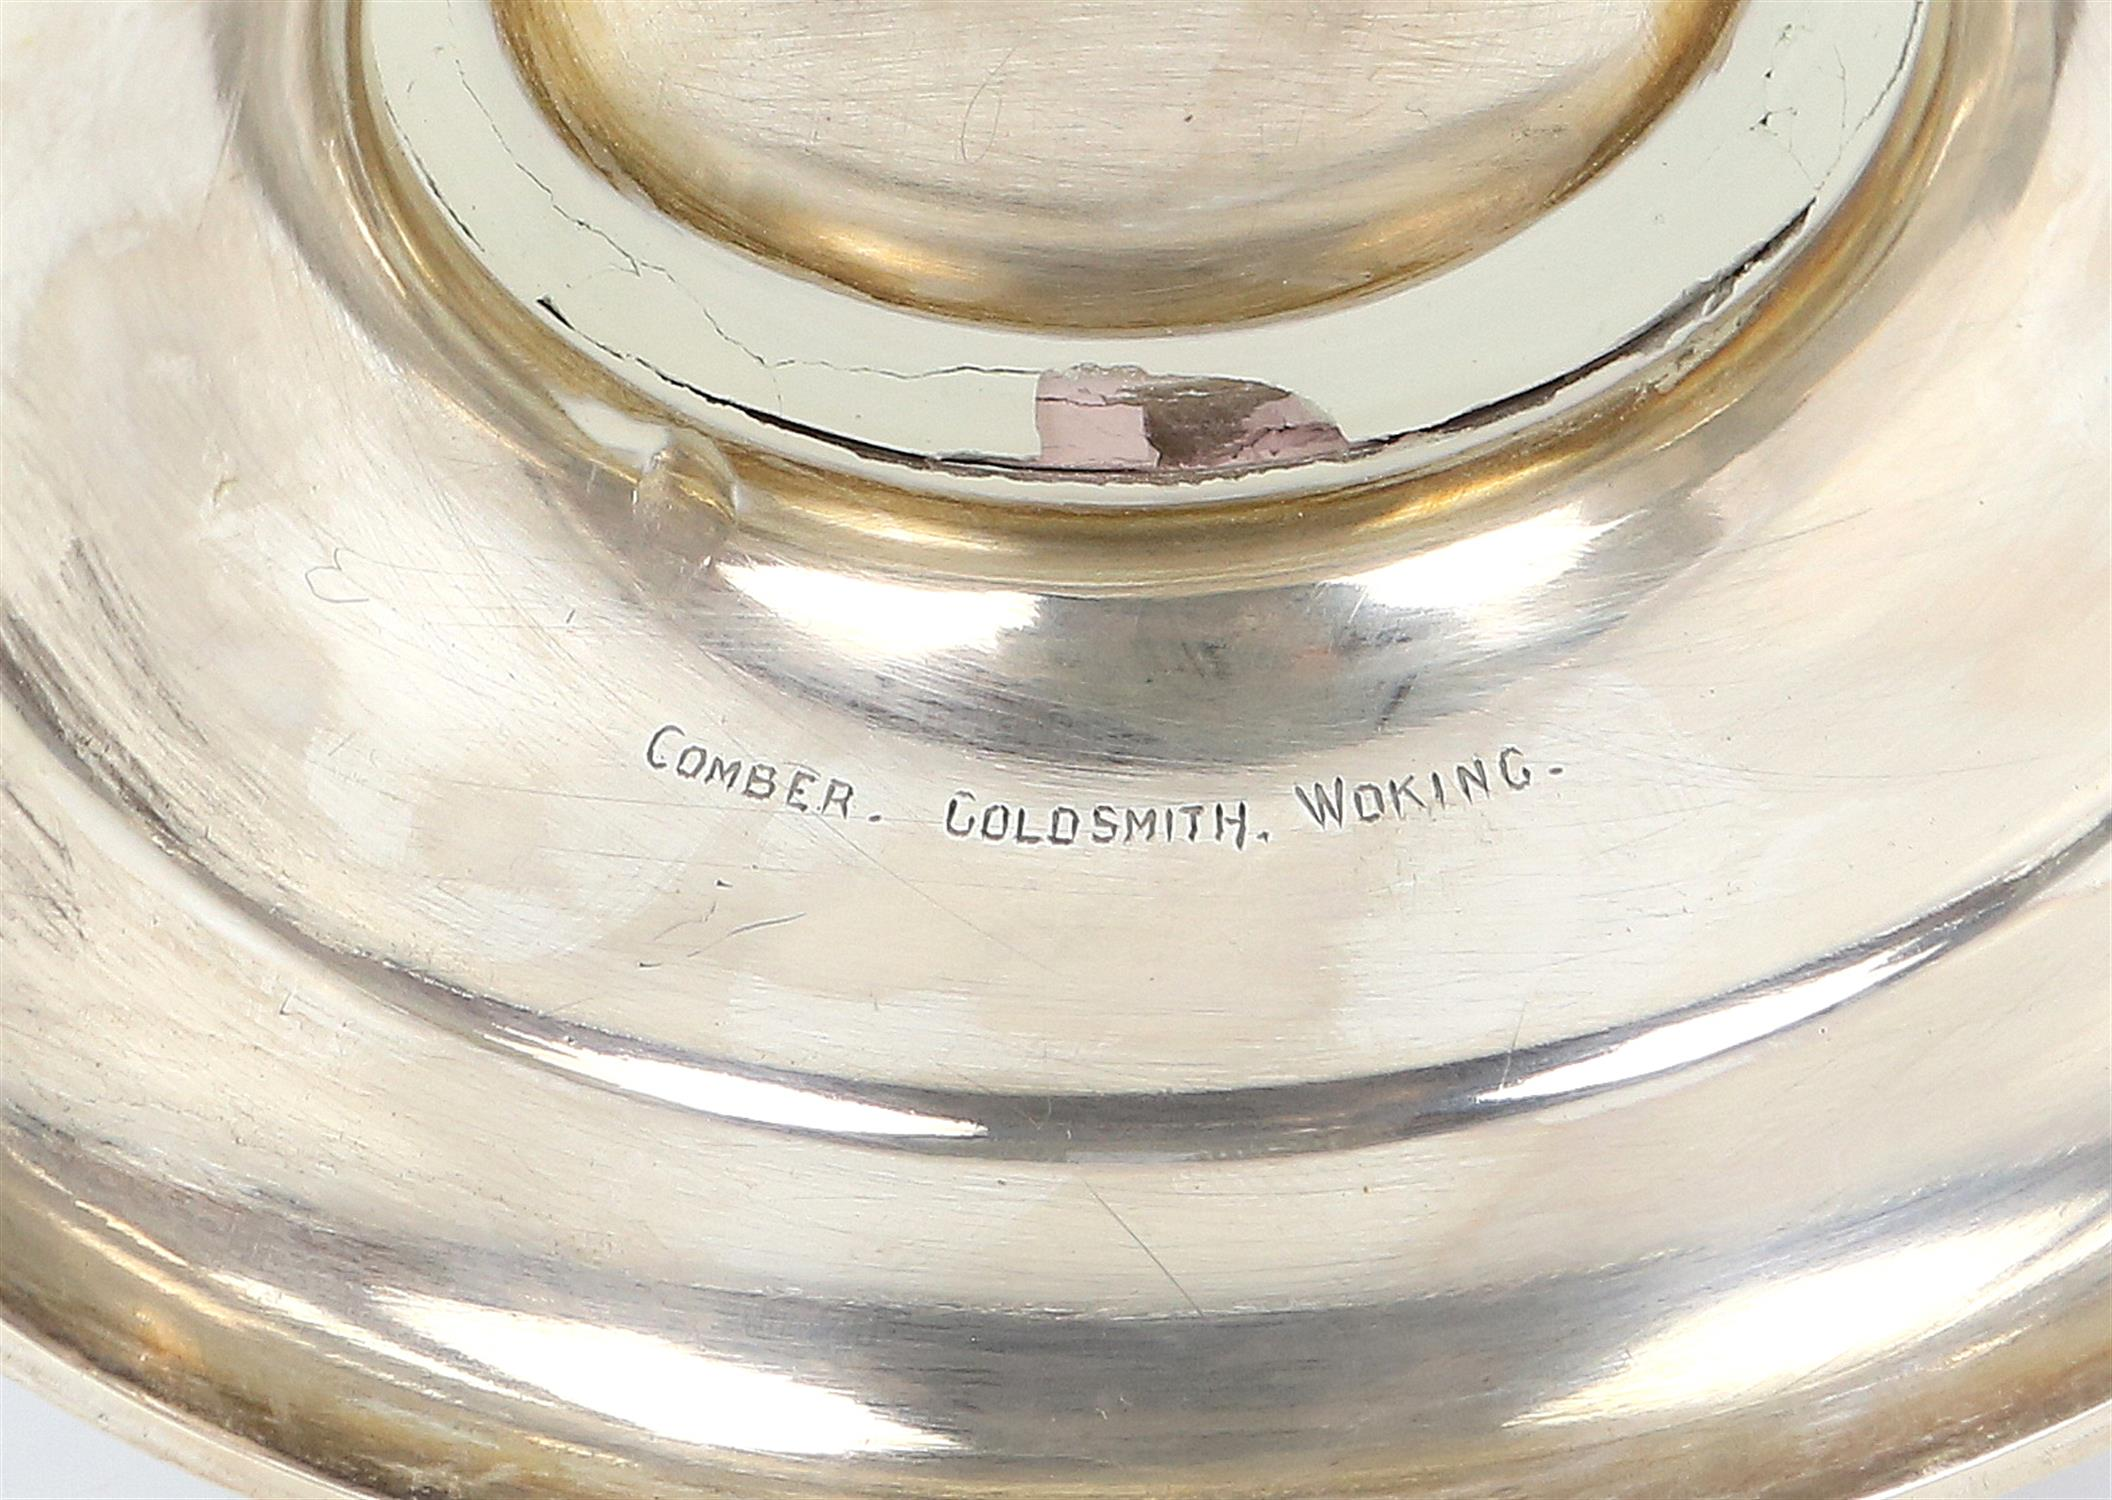 Edward VII silver presentation footed bowl of circular form with floral repousse decoration and - Image 7 of 7